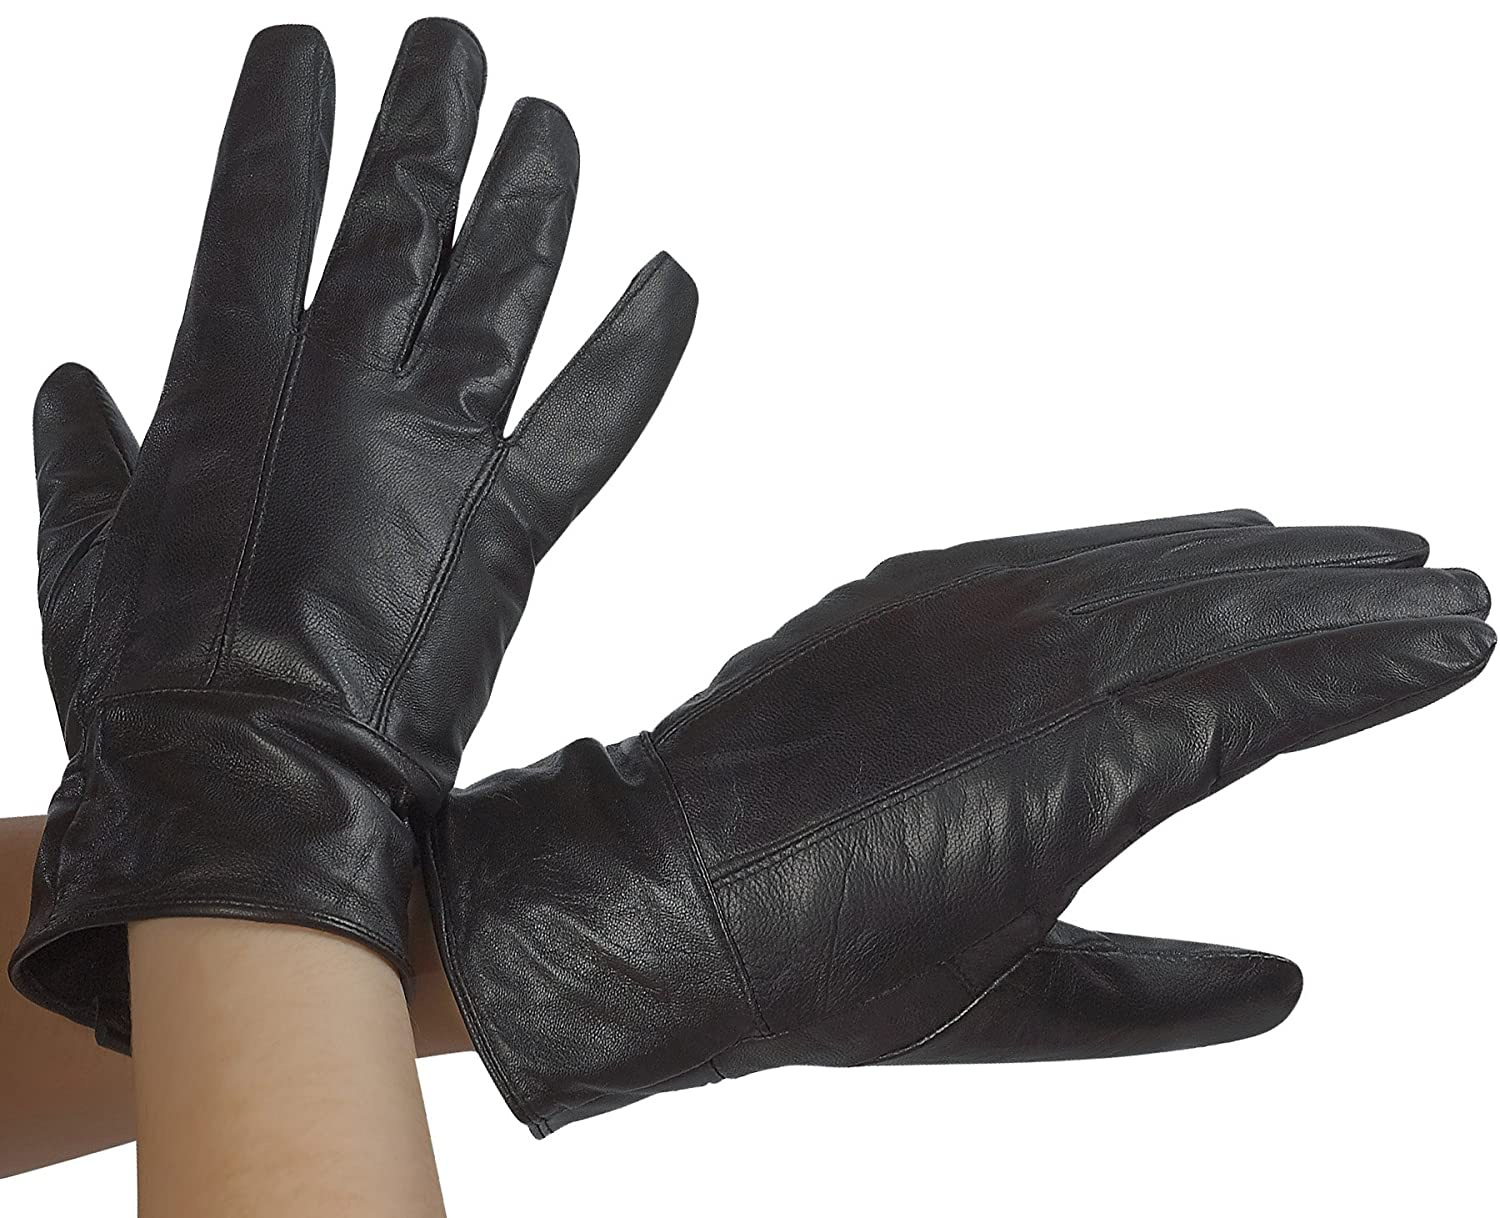 dc6bfc3f3 Classic Womens Black Leather Gloves with Thinsulate Lining by DEBRA  WEITZNER at Amazon Women's Clothing store: